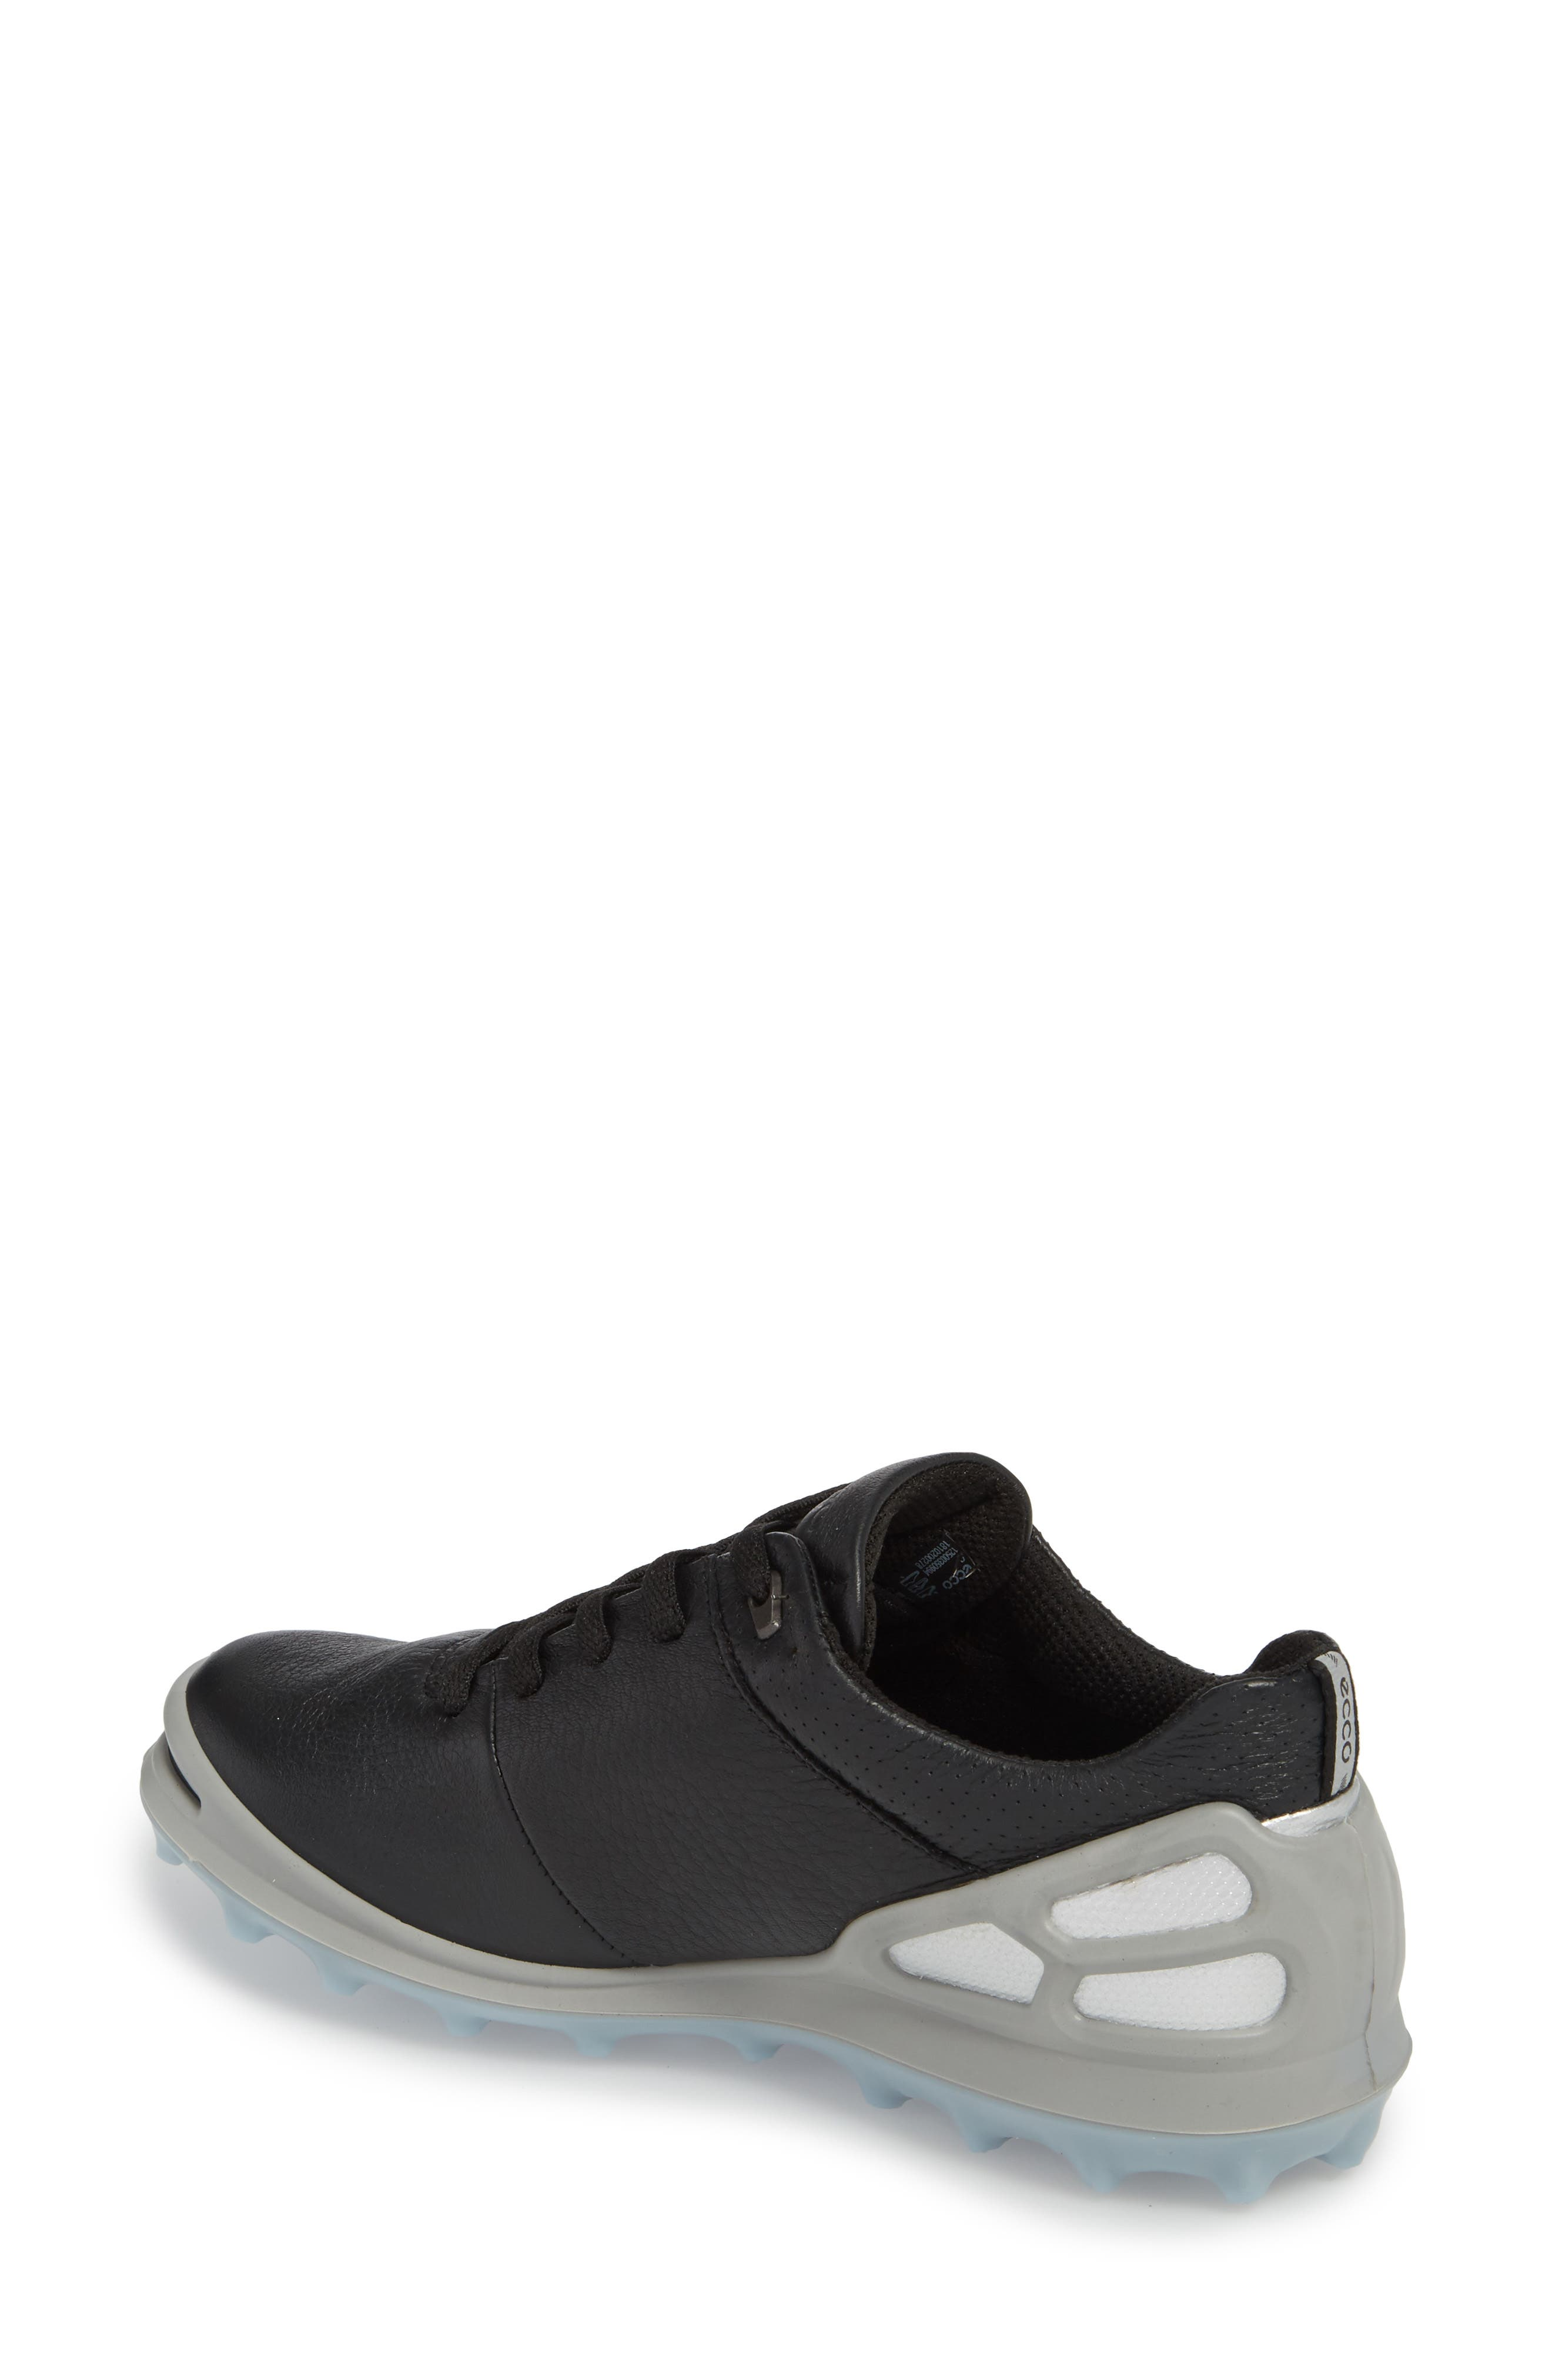 Golf Cage Pro Gore-Tex<sup>®</sup> Waterproof Shoe,                             Alternate thumbnail 2, color,                             Black Leather